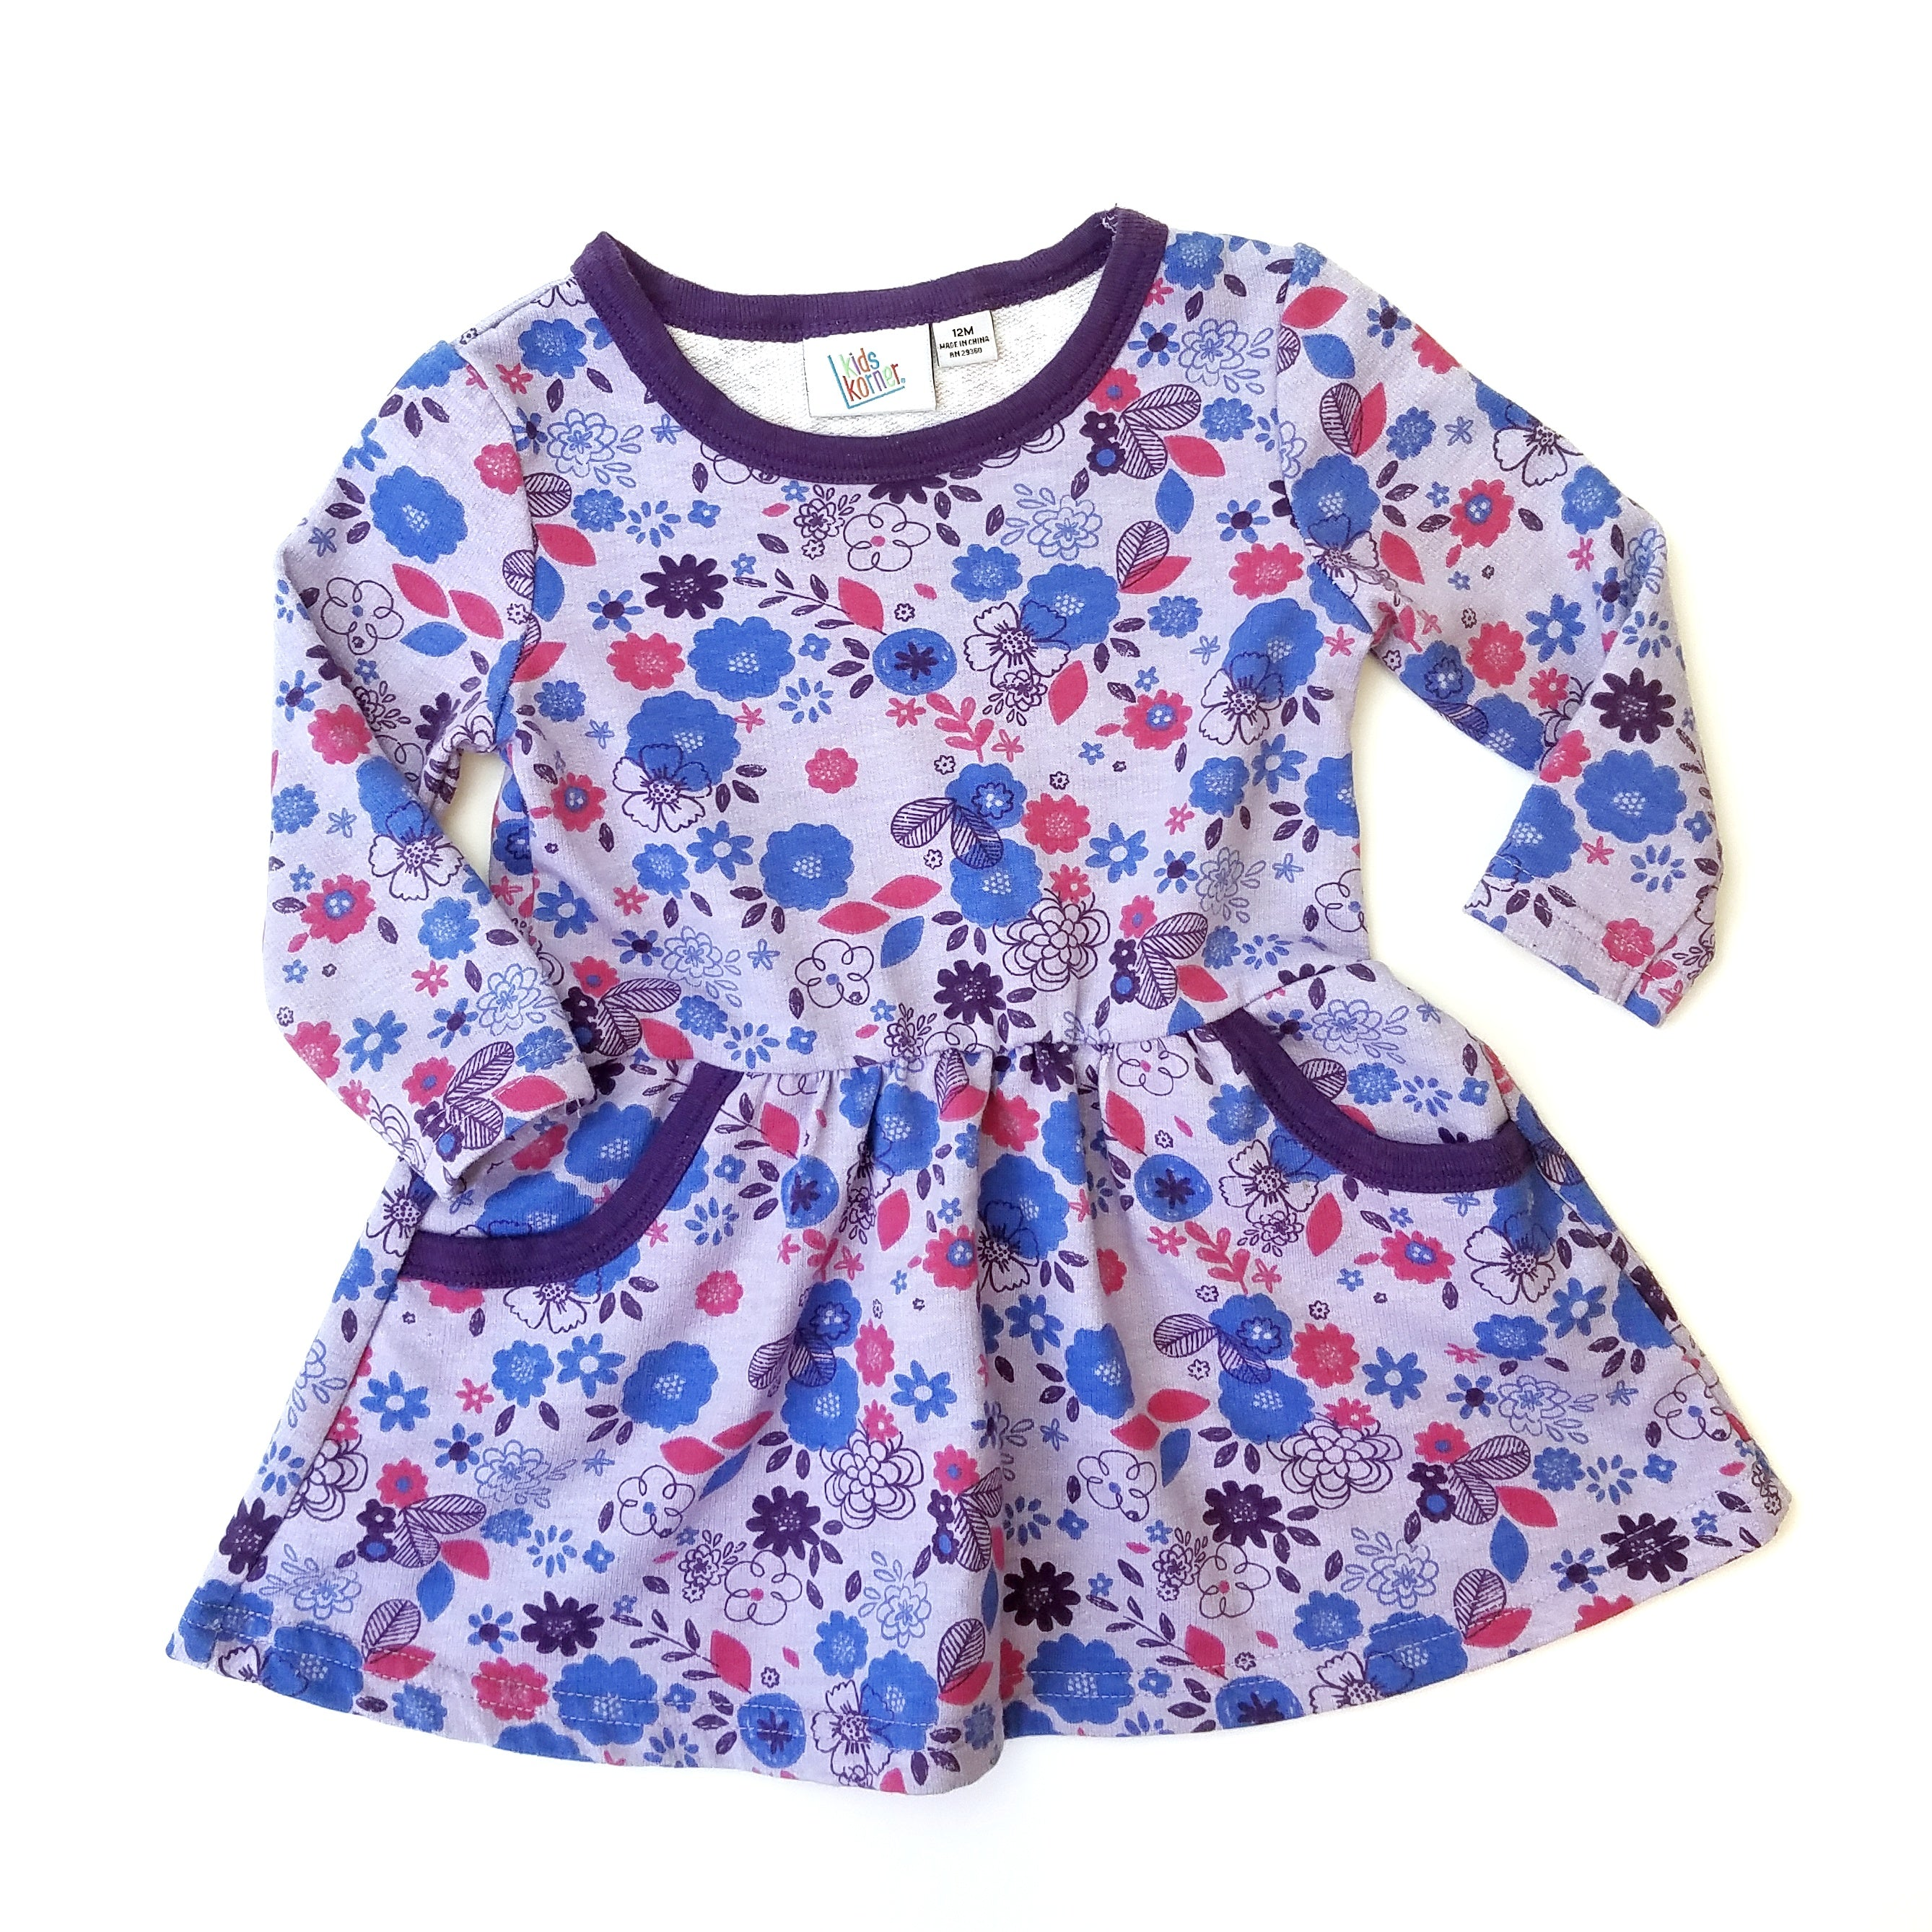 12mo Floral Dress - Wild Child